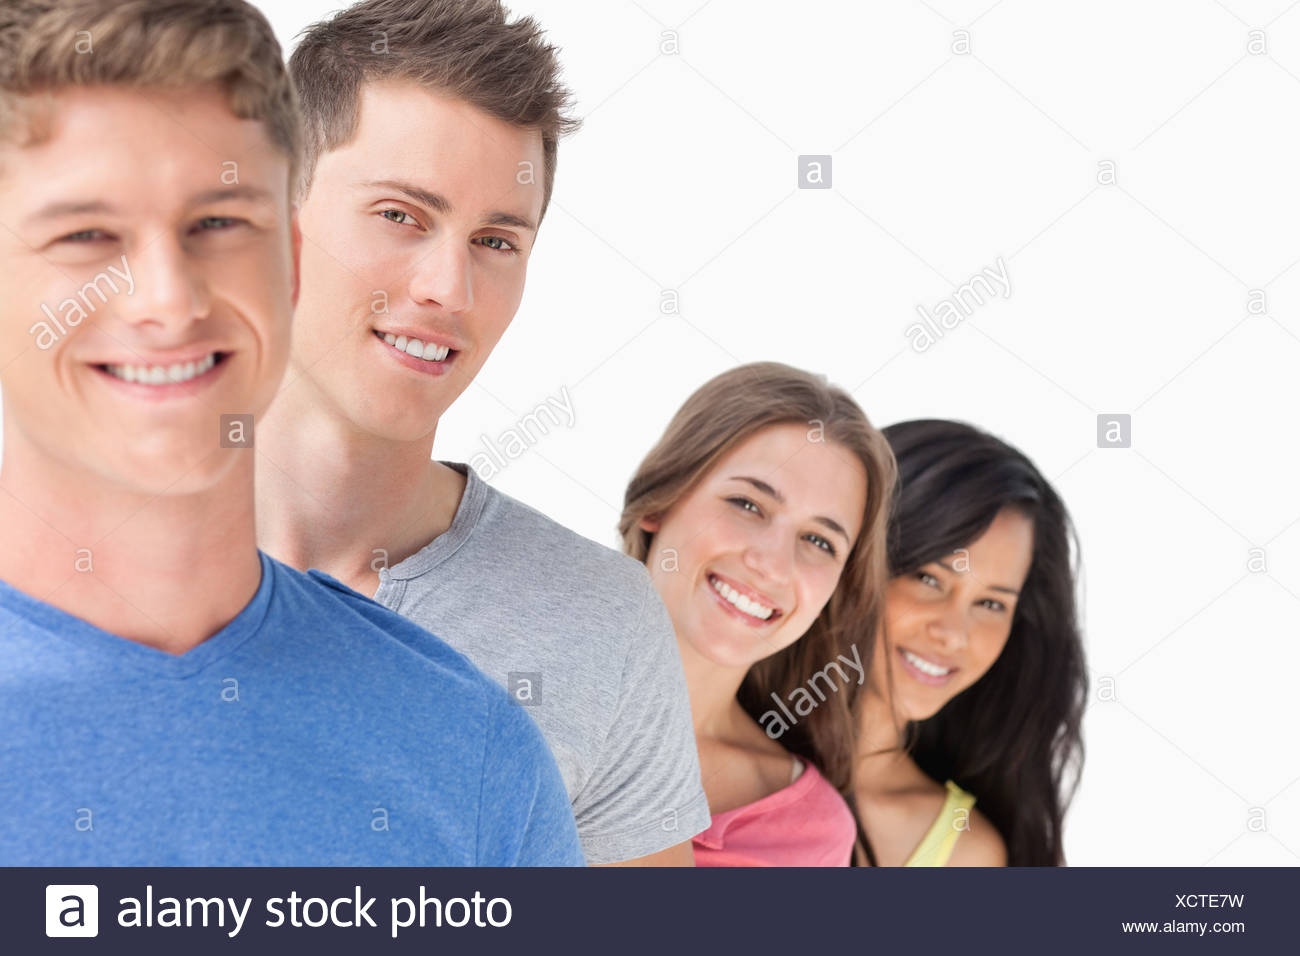 Four people standing one in front of the other with the girls heads angled out more - Stock Image